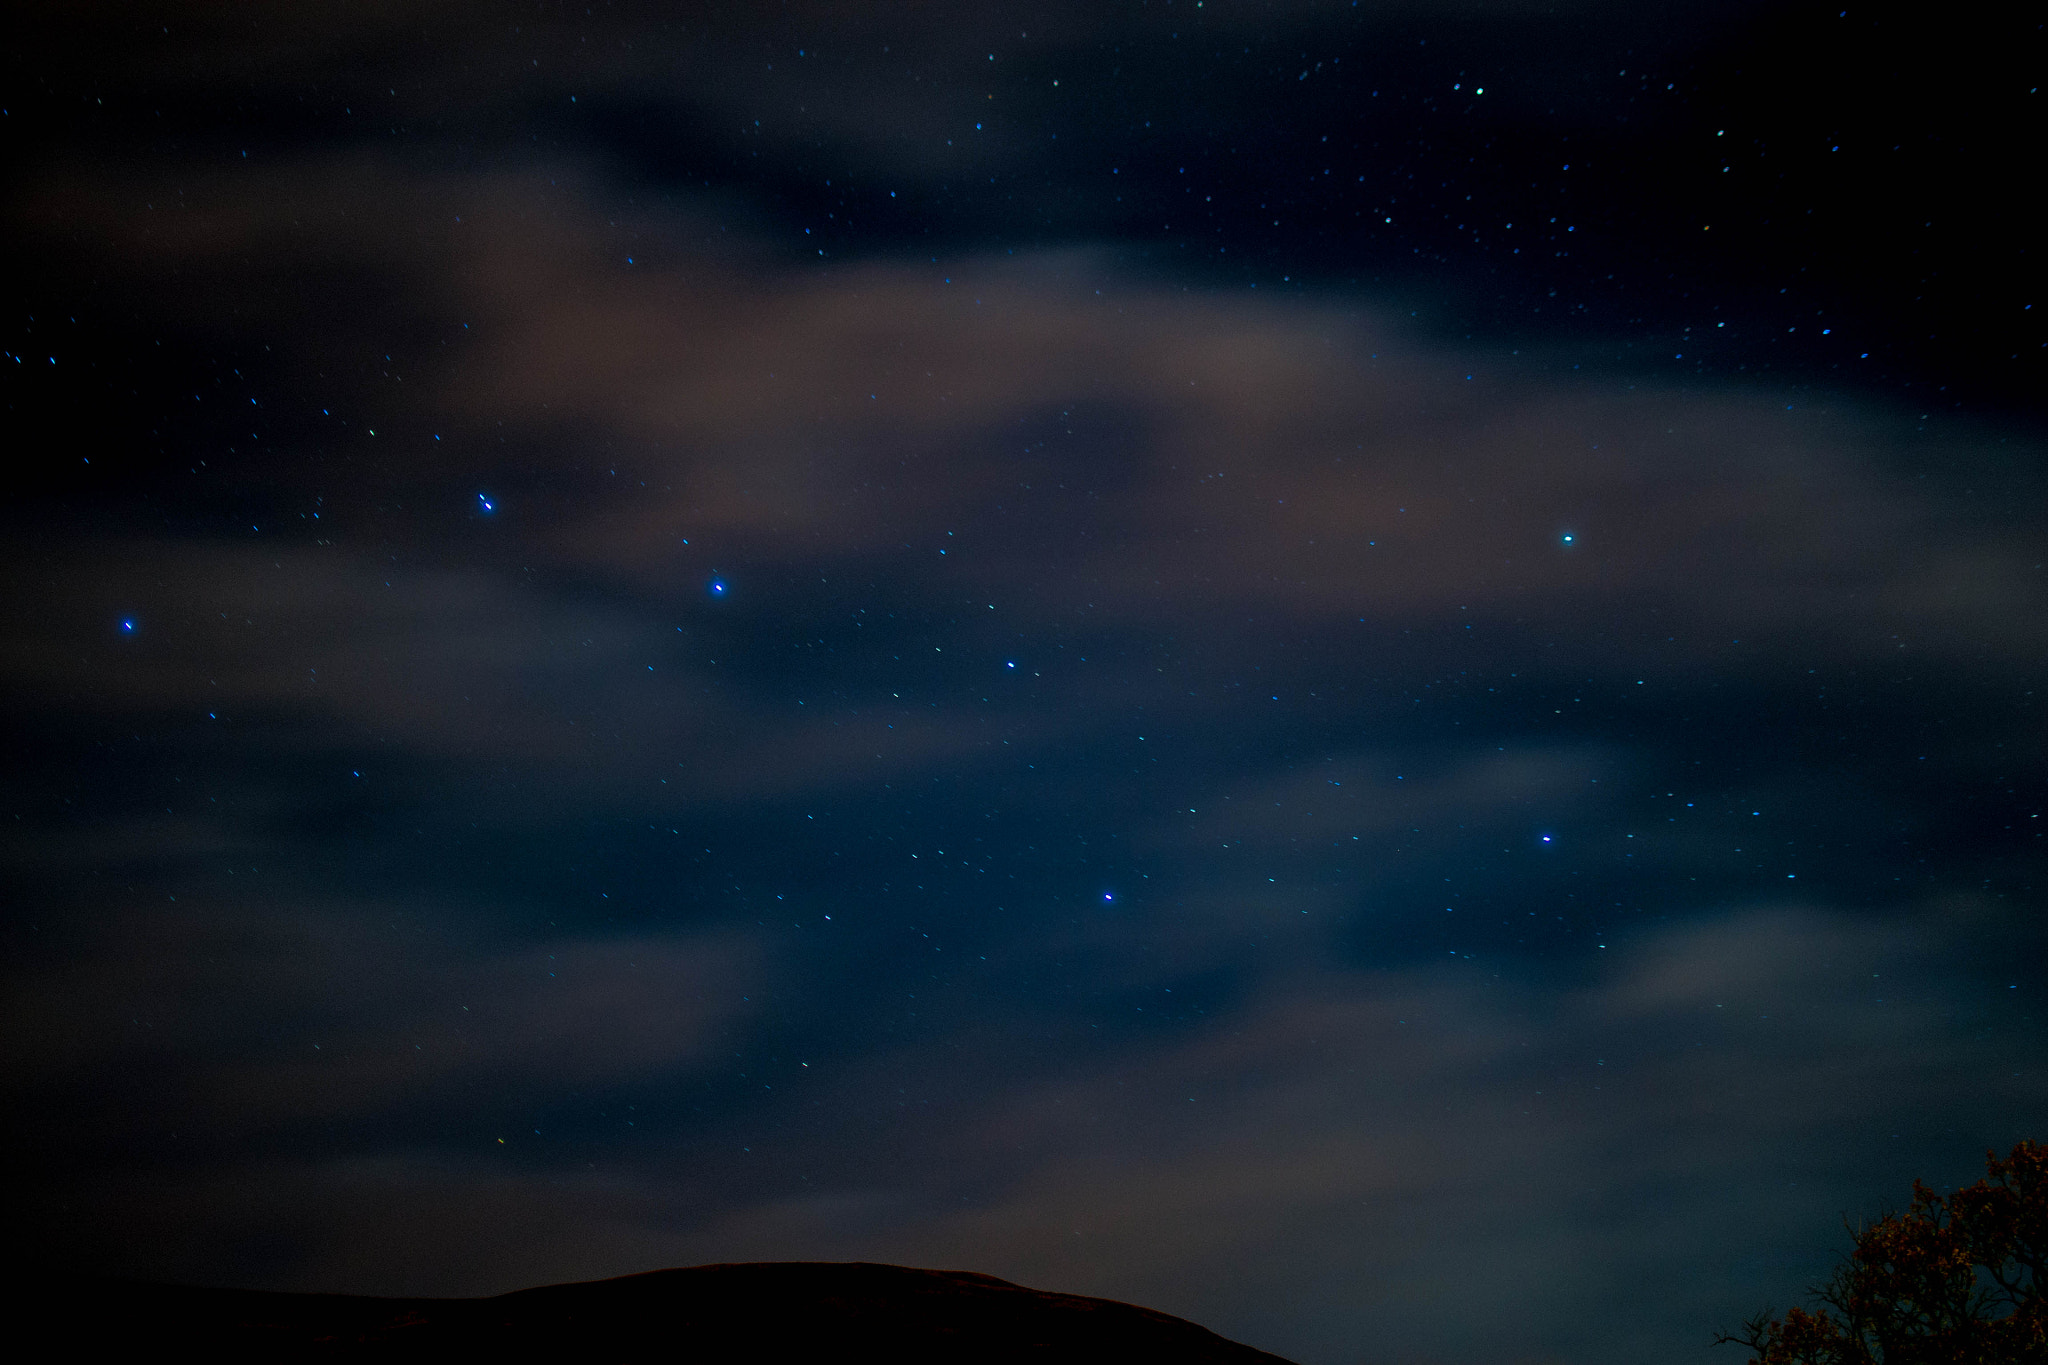 Photograph The Big Dipper by Steven Brison on 500px